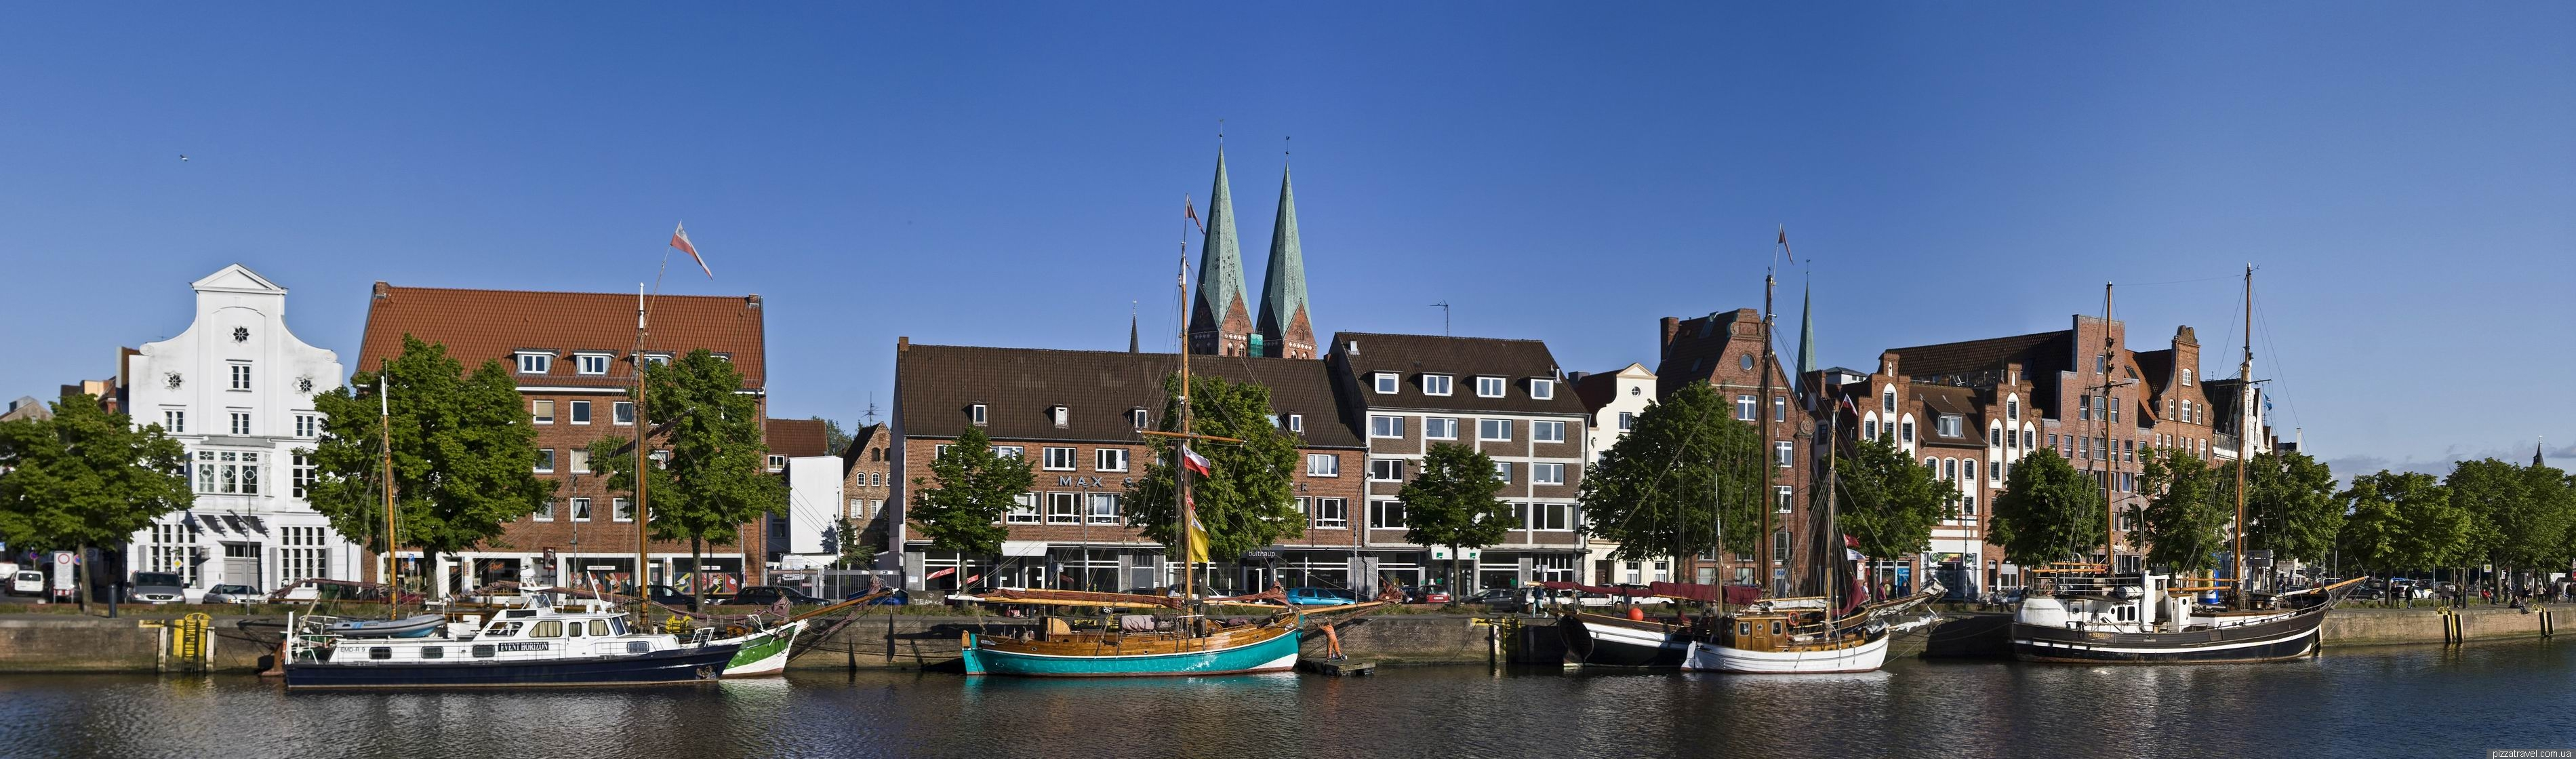 Lubeck Germany  City pictures : Lubeck Germany Blog about interesting places